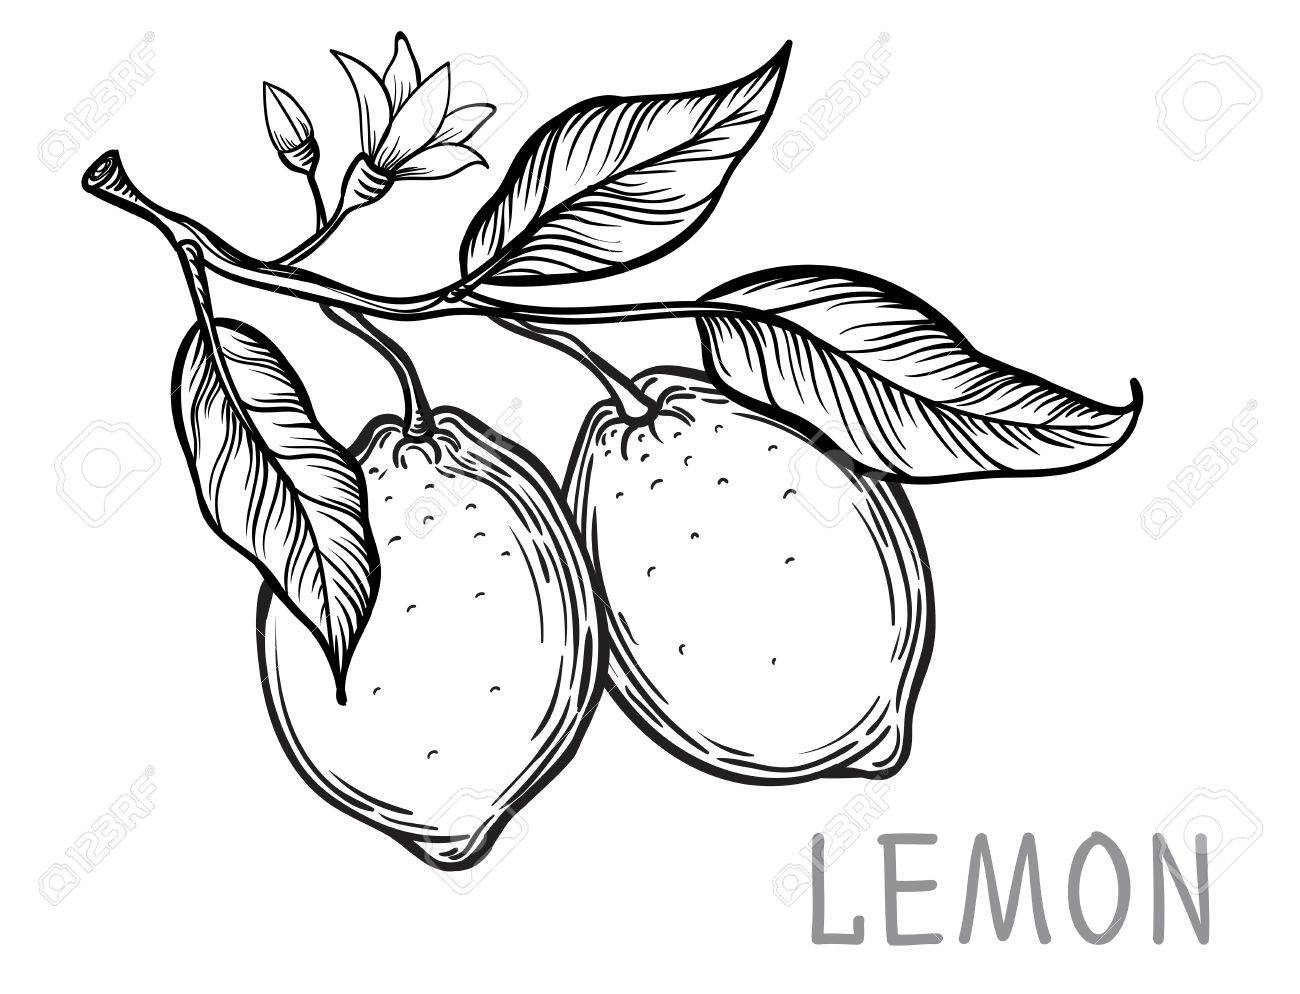 Lemon Drawing At Getdrawings